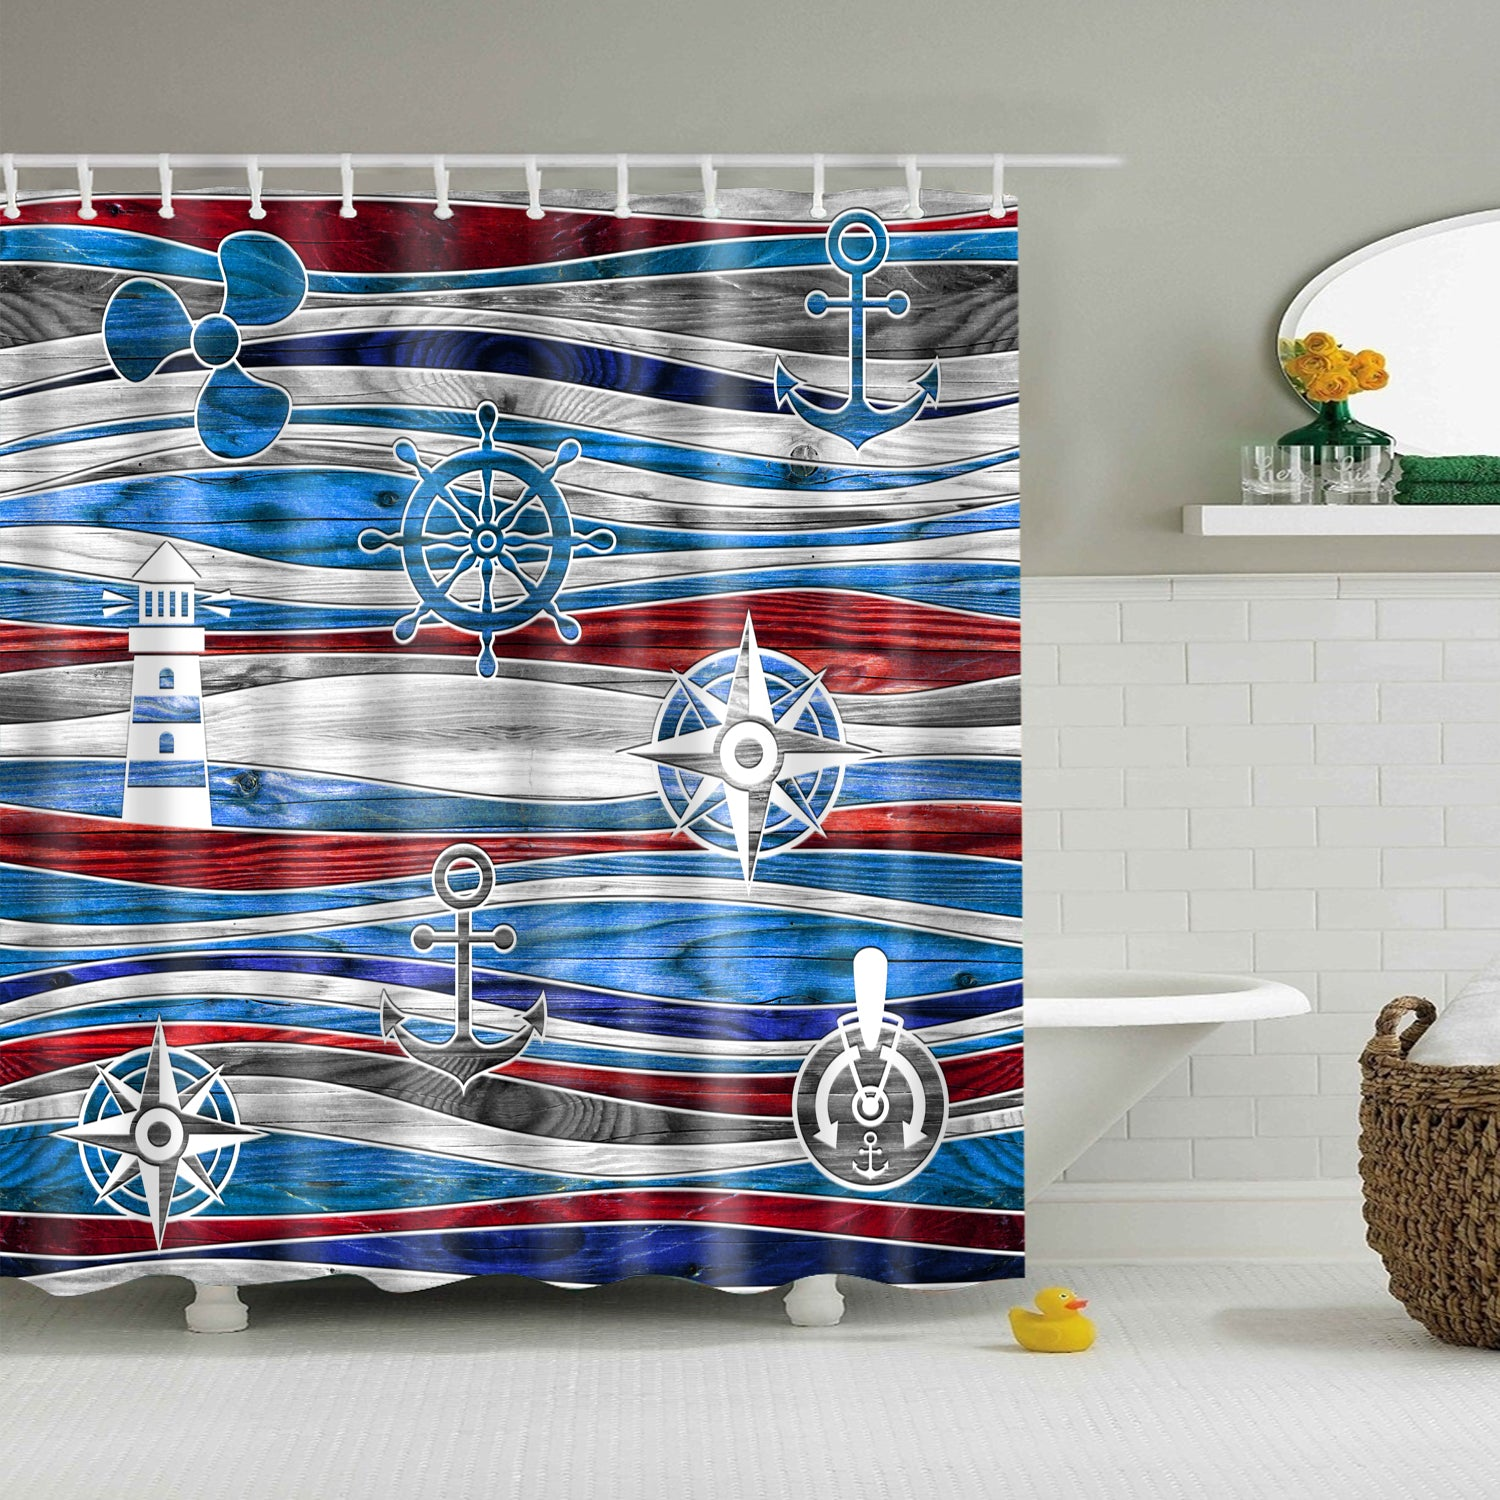 Nautical Elements Marine Waves Wood Grain Shower Curtain Bathroom Decor